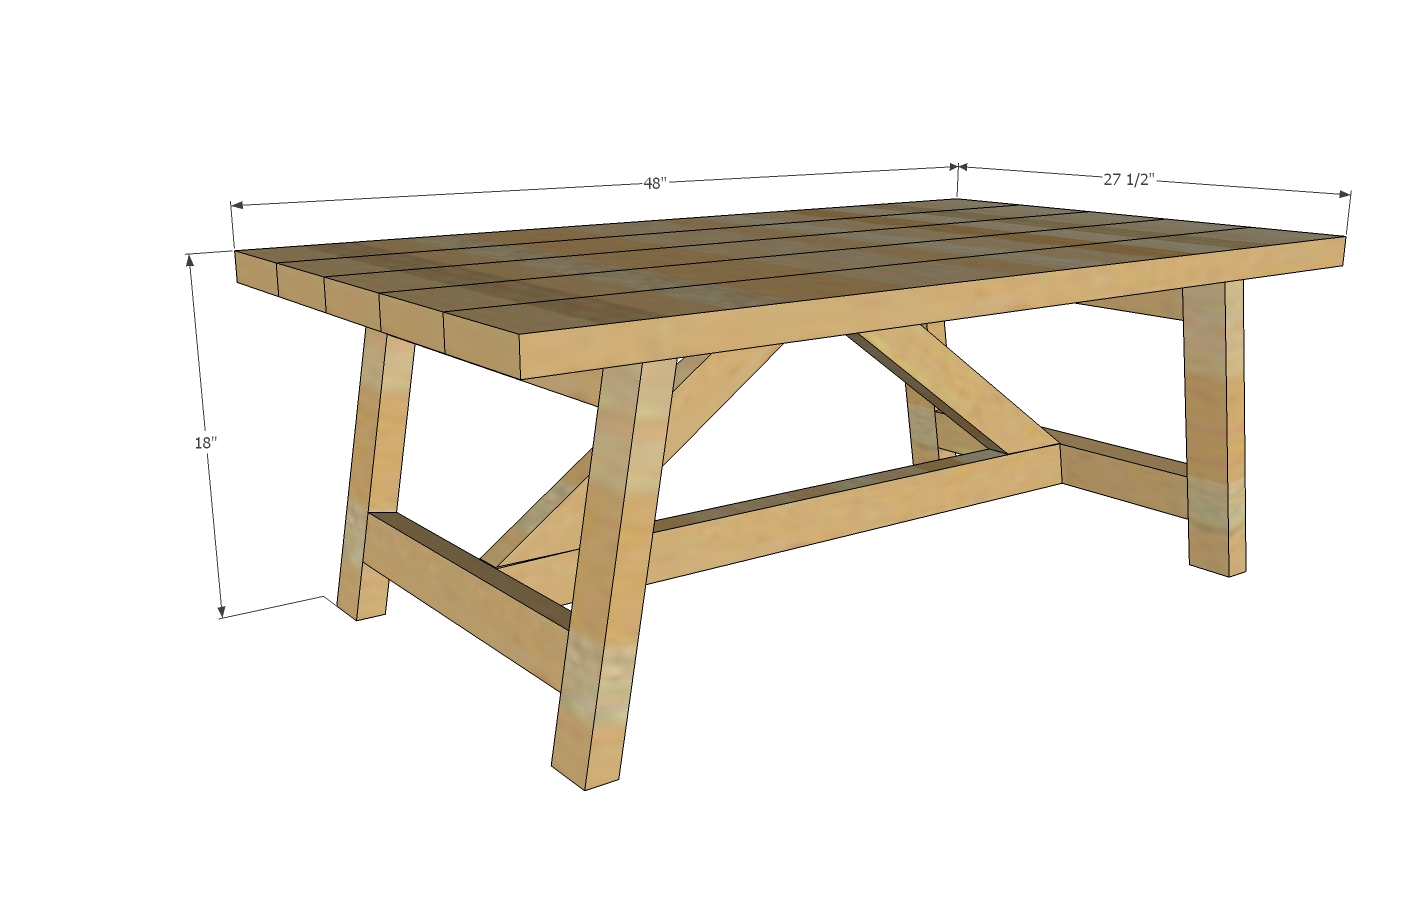 woodworking plans for octagon picnic table quick